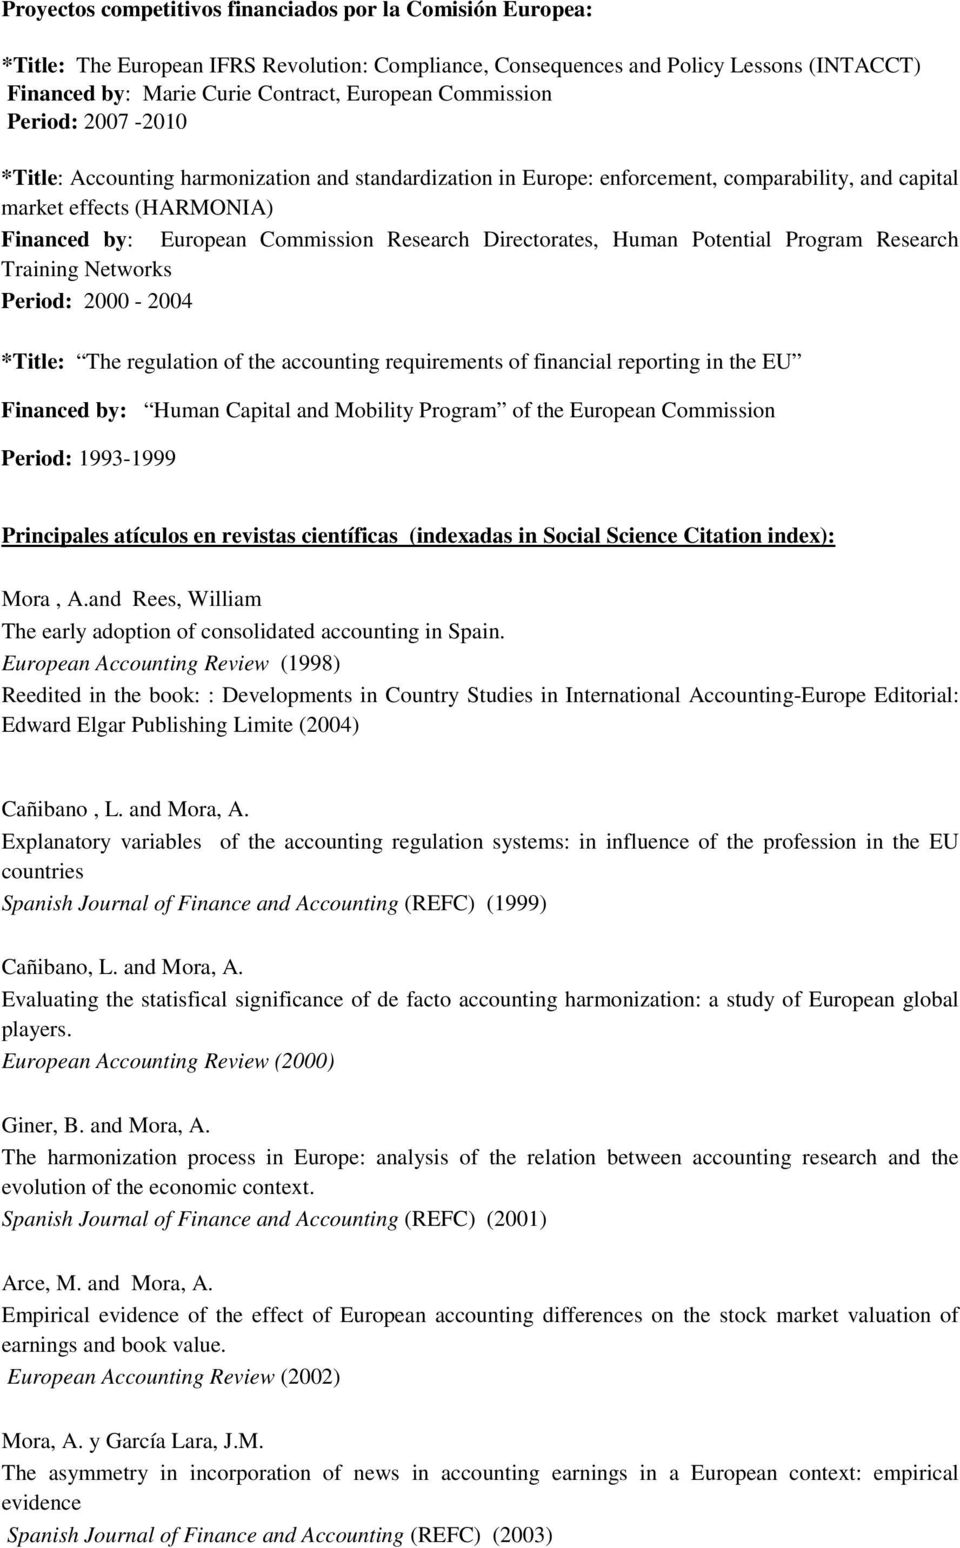 Research Directorates, Human Potential Program Research Training Networks Period: 2000-2004 *Title: The regulation of the accounting requirements of financial reporting in the EU Financed by: Human